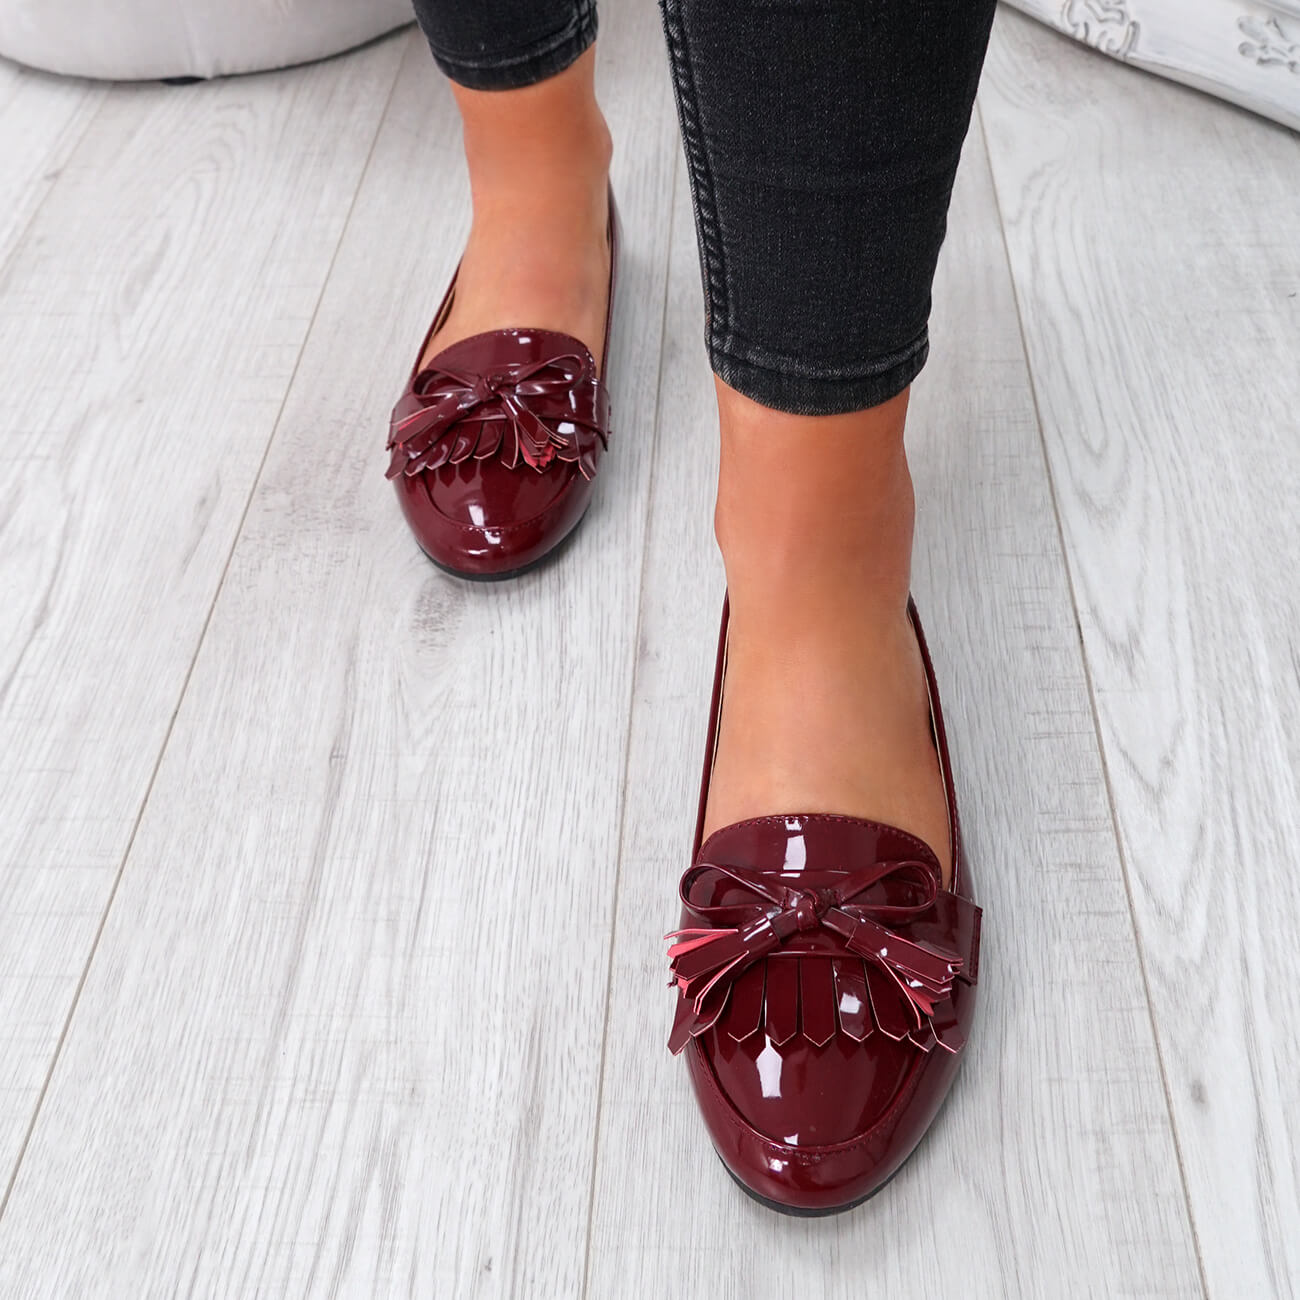 WOMENS-LADIES-FRINGE-BALLERINAS-SLIP-ON-FLAT-DOLLY-PUMPS-CASUAL-SMART-SHOES-SIZE thumbnail 37